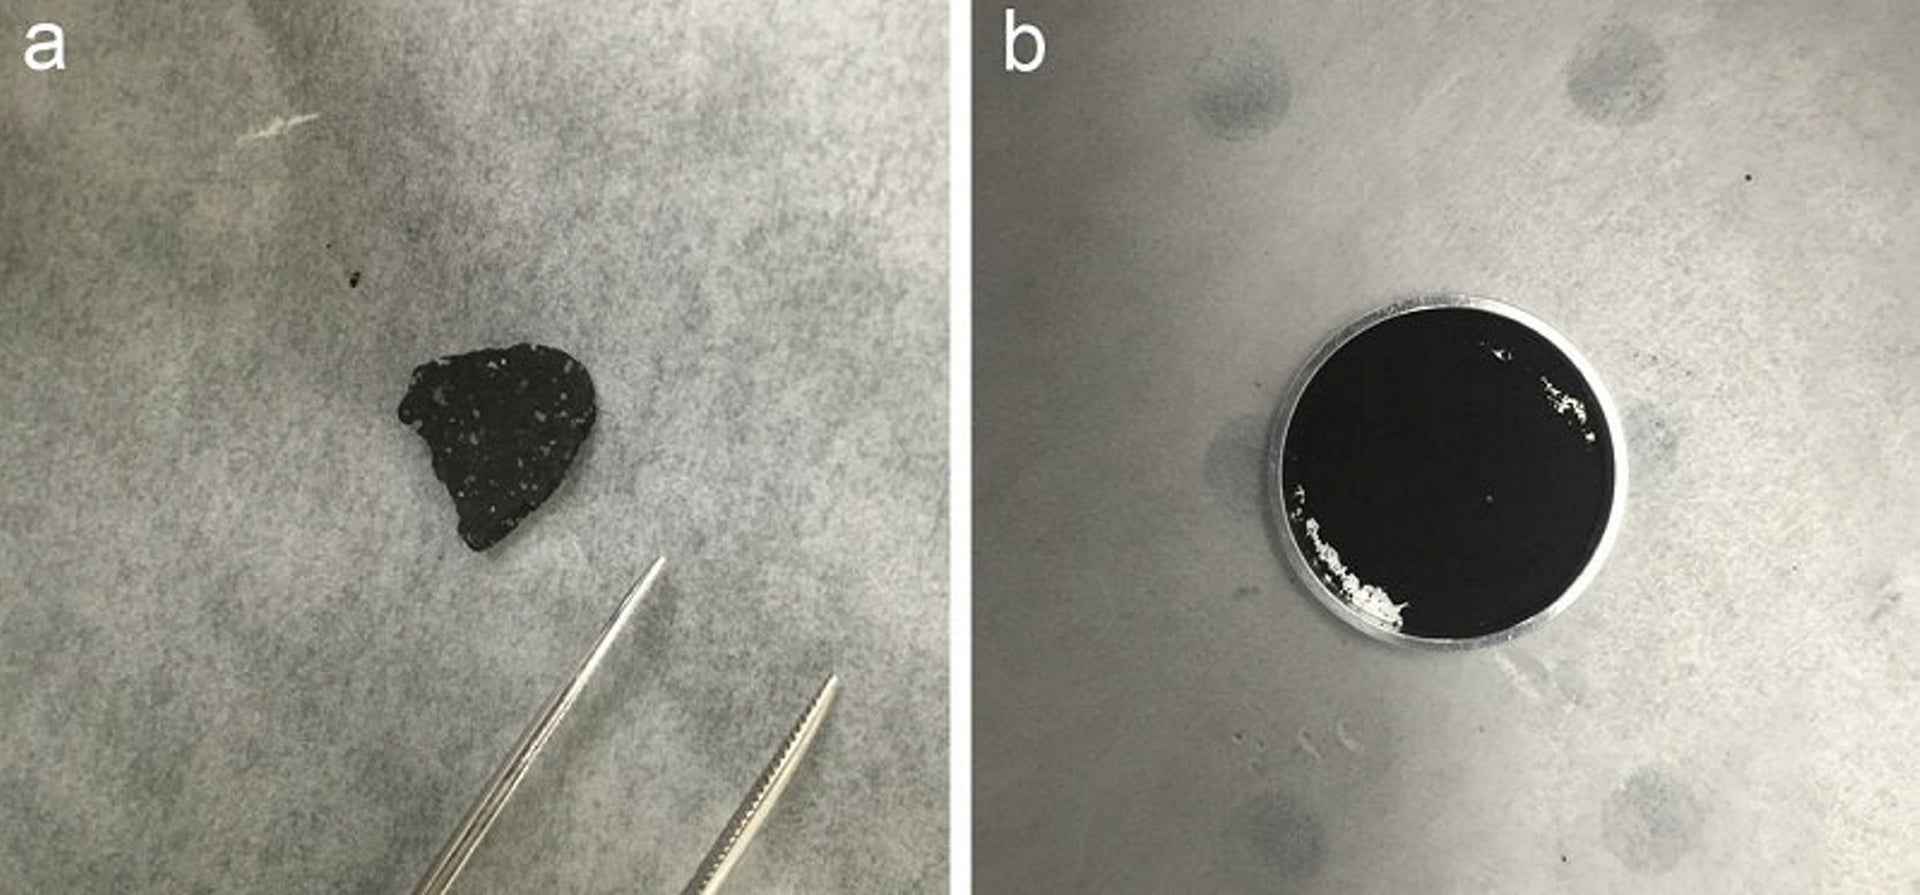 The new study compared mid-infrared spectra from a chip from the Tagish Lake meteoroid whole (right) and ground-up (left) to spectra collected from Phobos by the Mars Global Explorer spacecraft in 1998